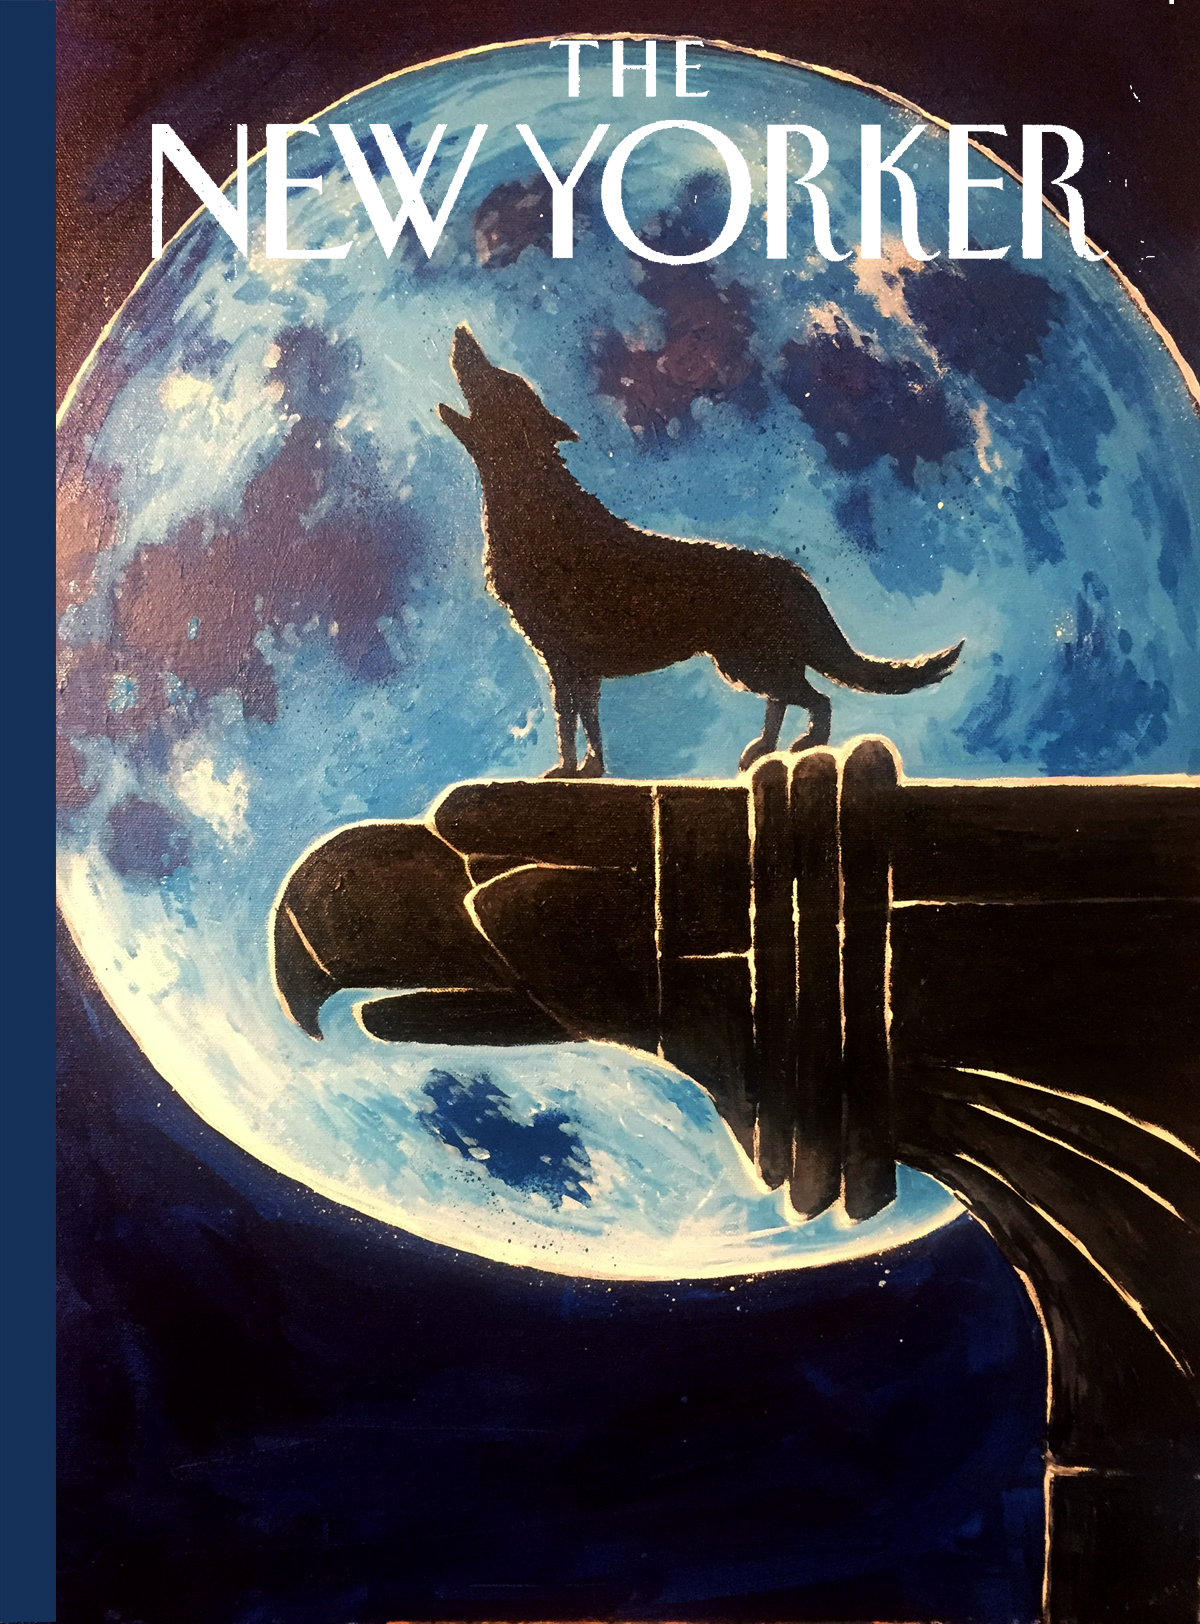 Proposed cover for The New Yorker